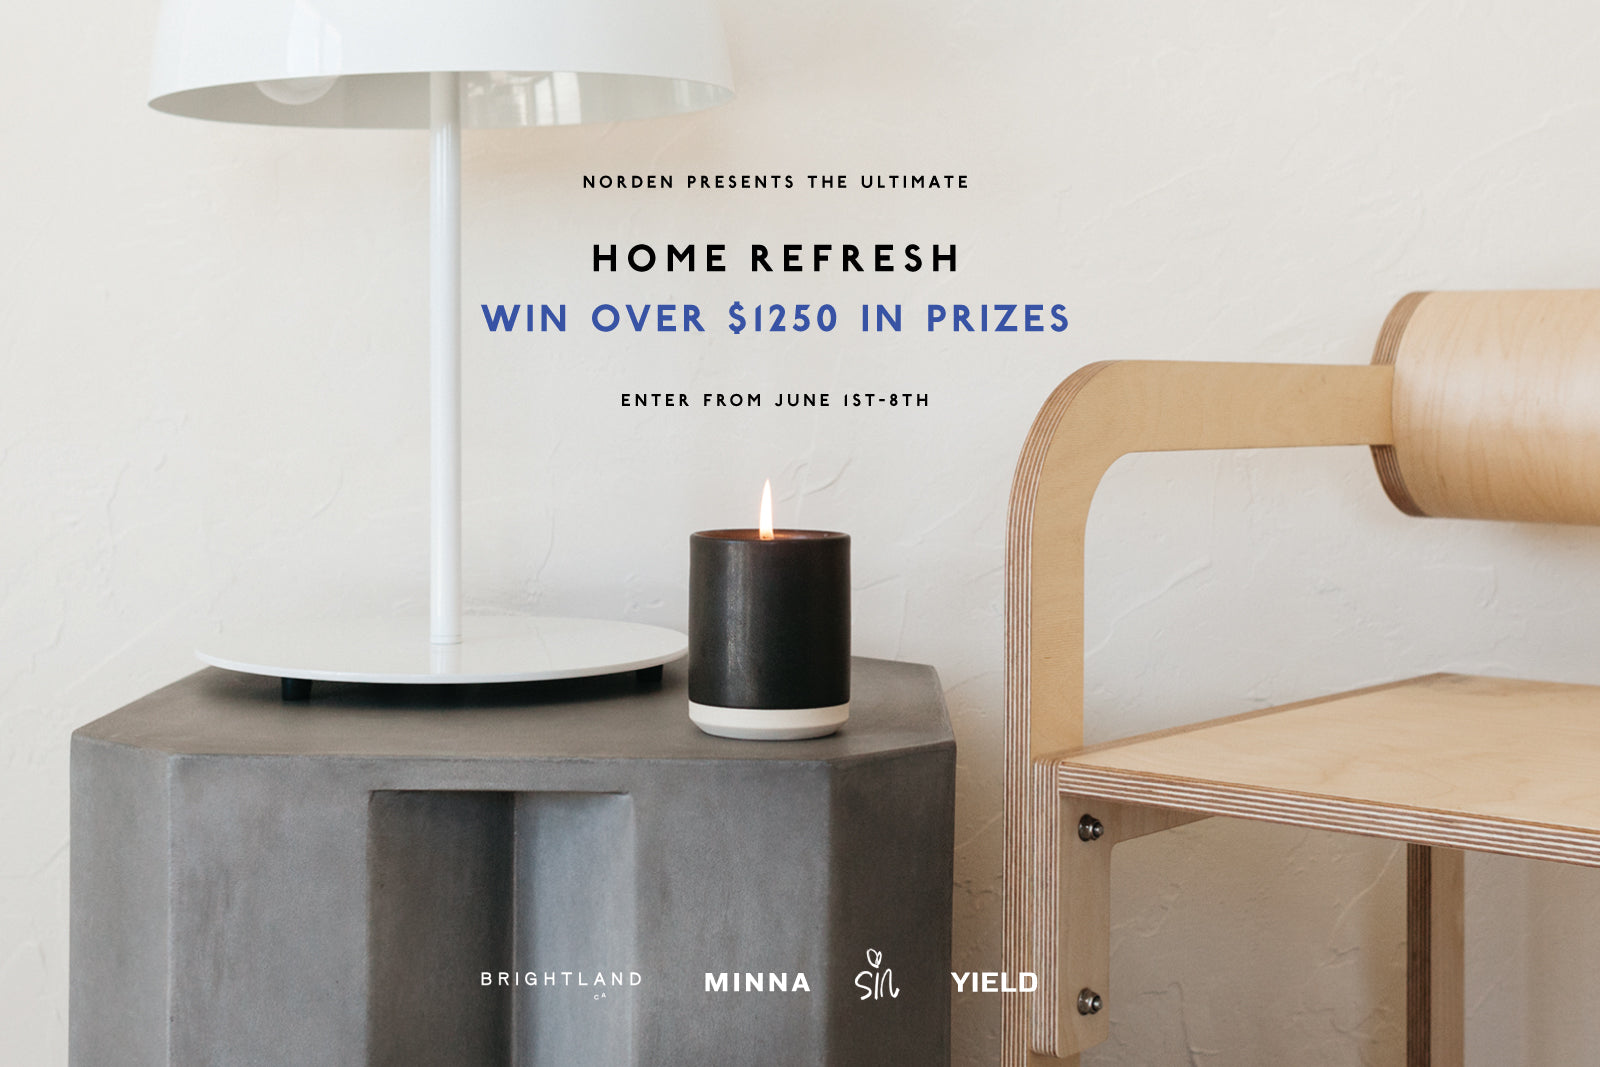 The Norden Spring Home Goods Giveaway